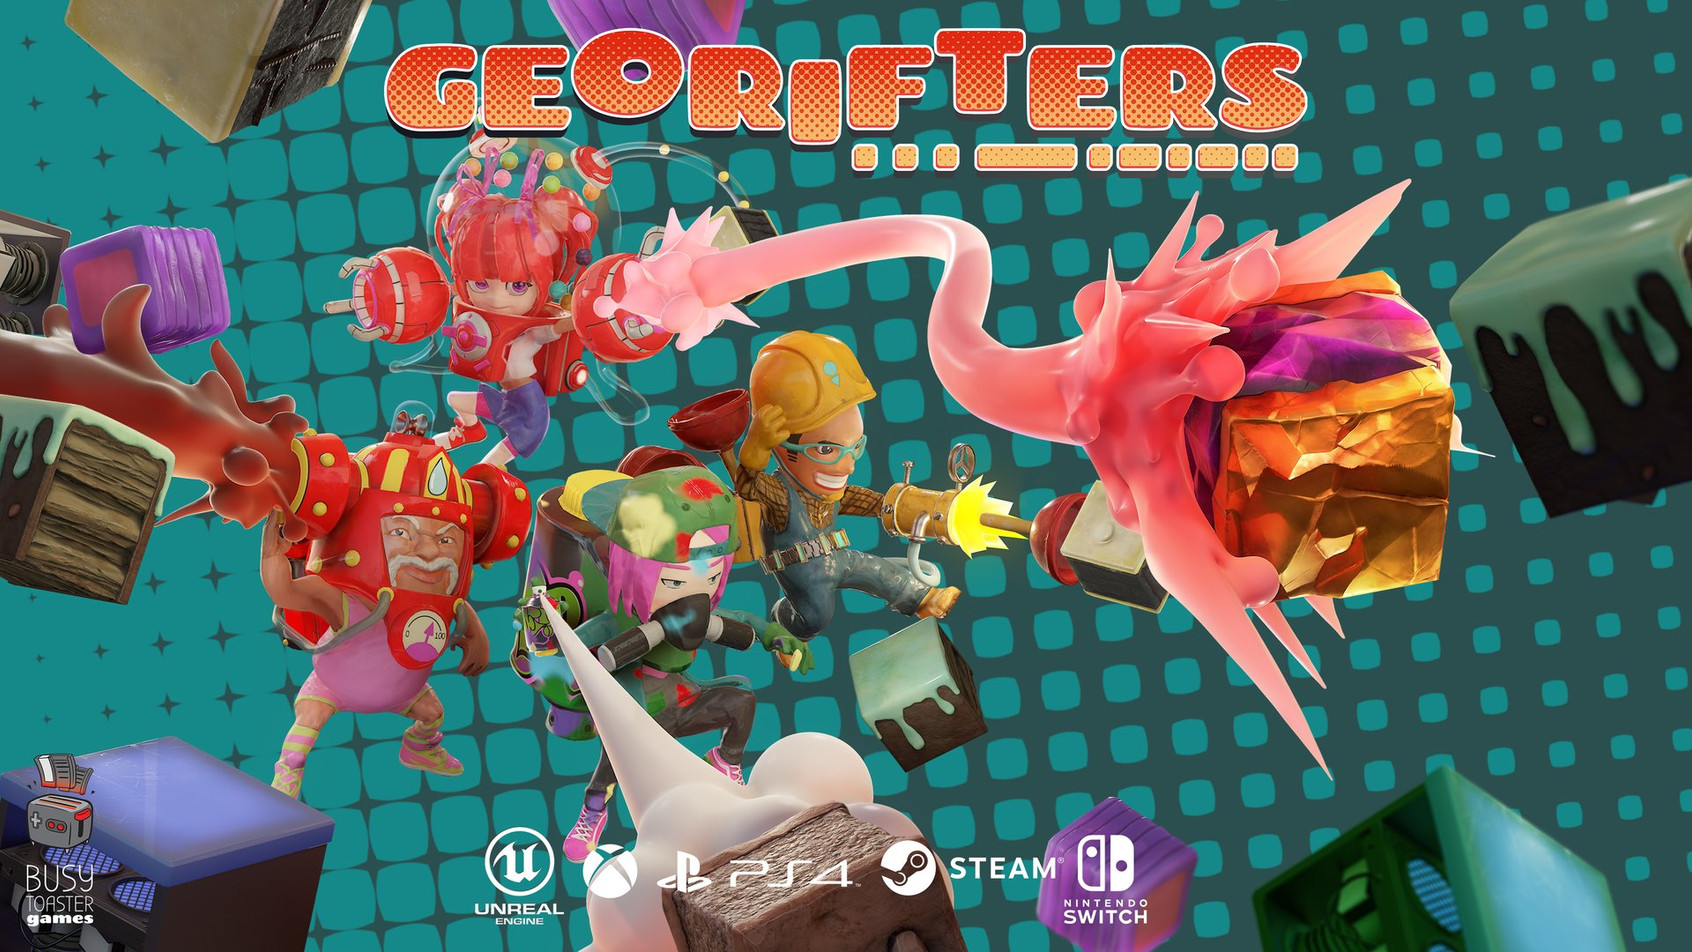 georifters_coming_soon_just-icons_web.jp